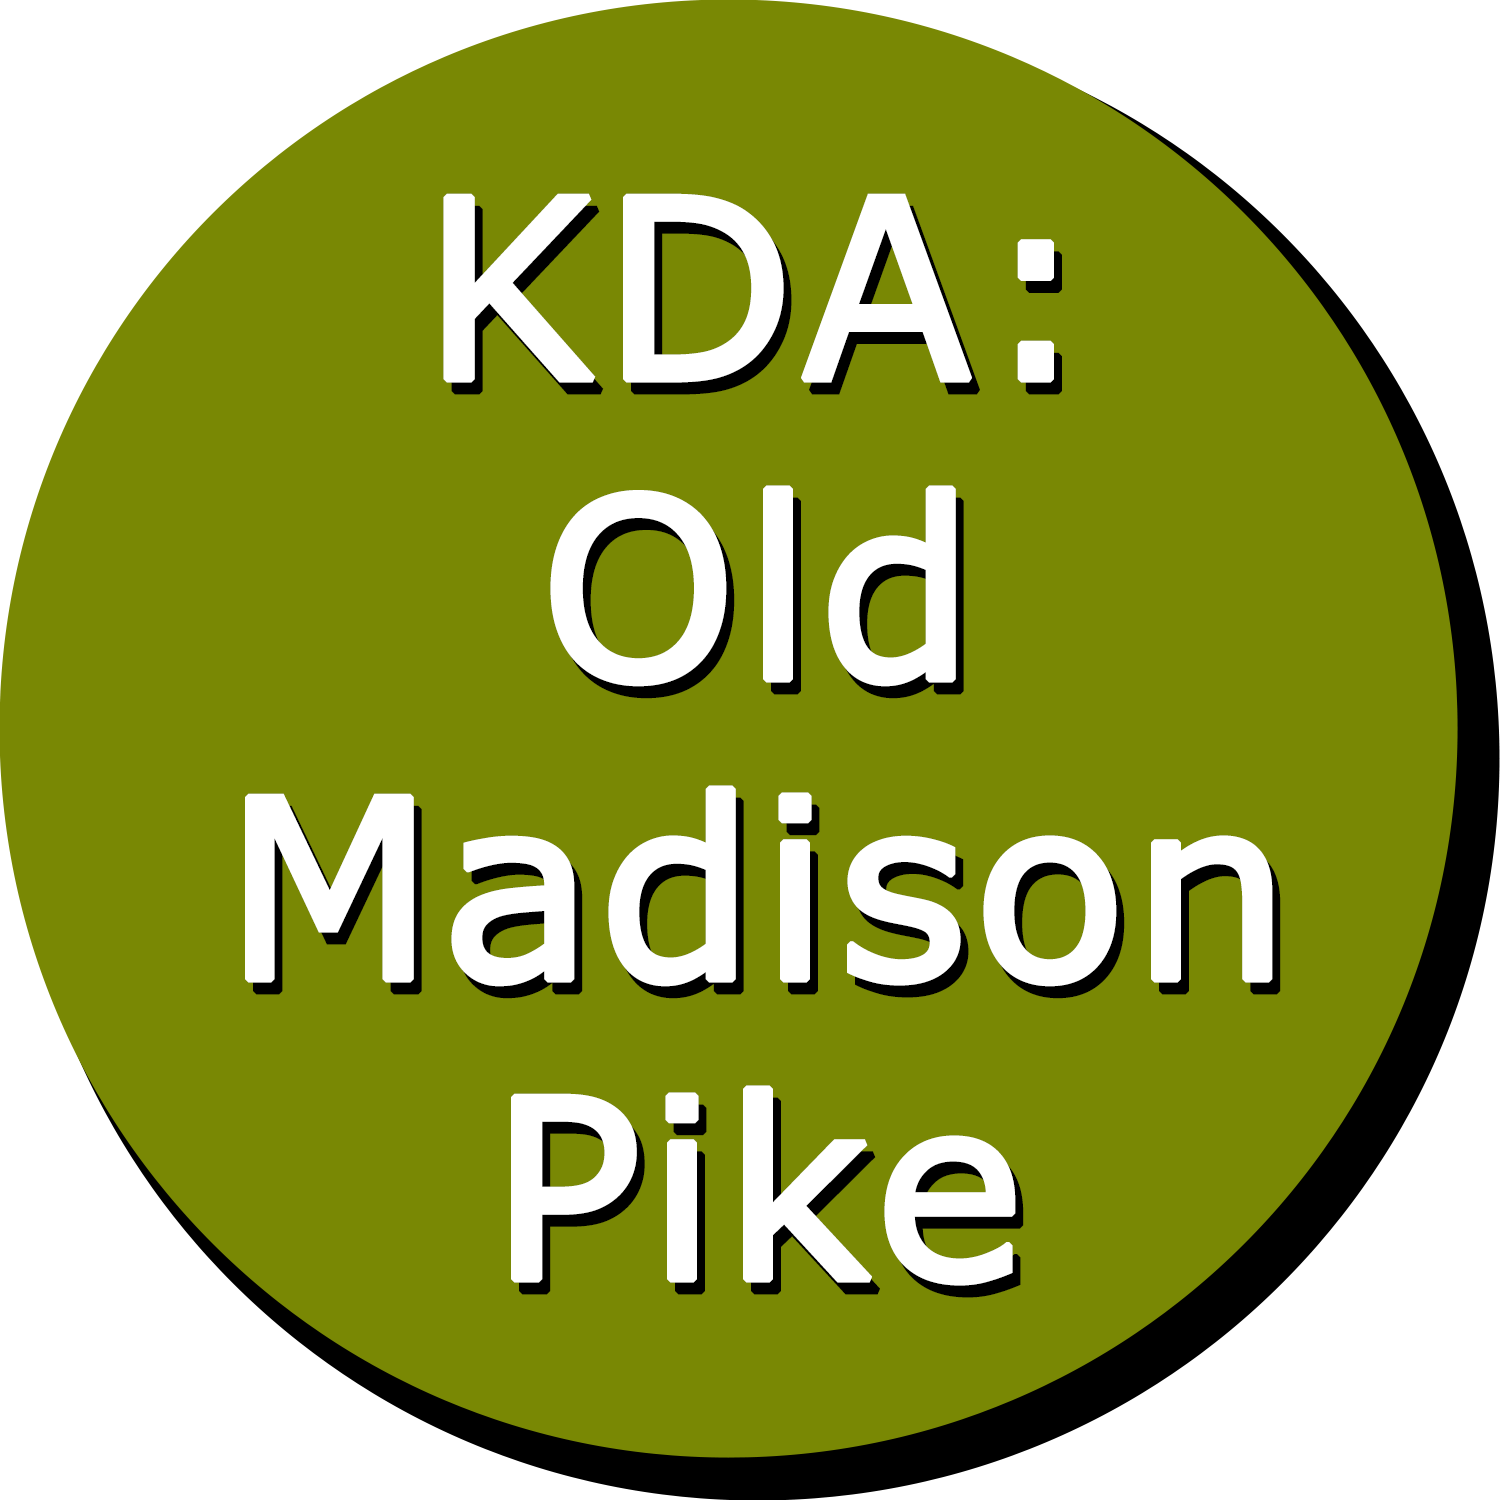 Old Madison Pike